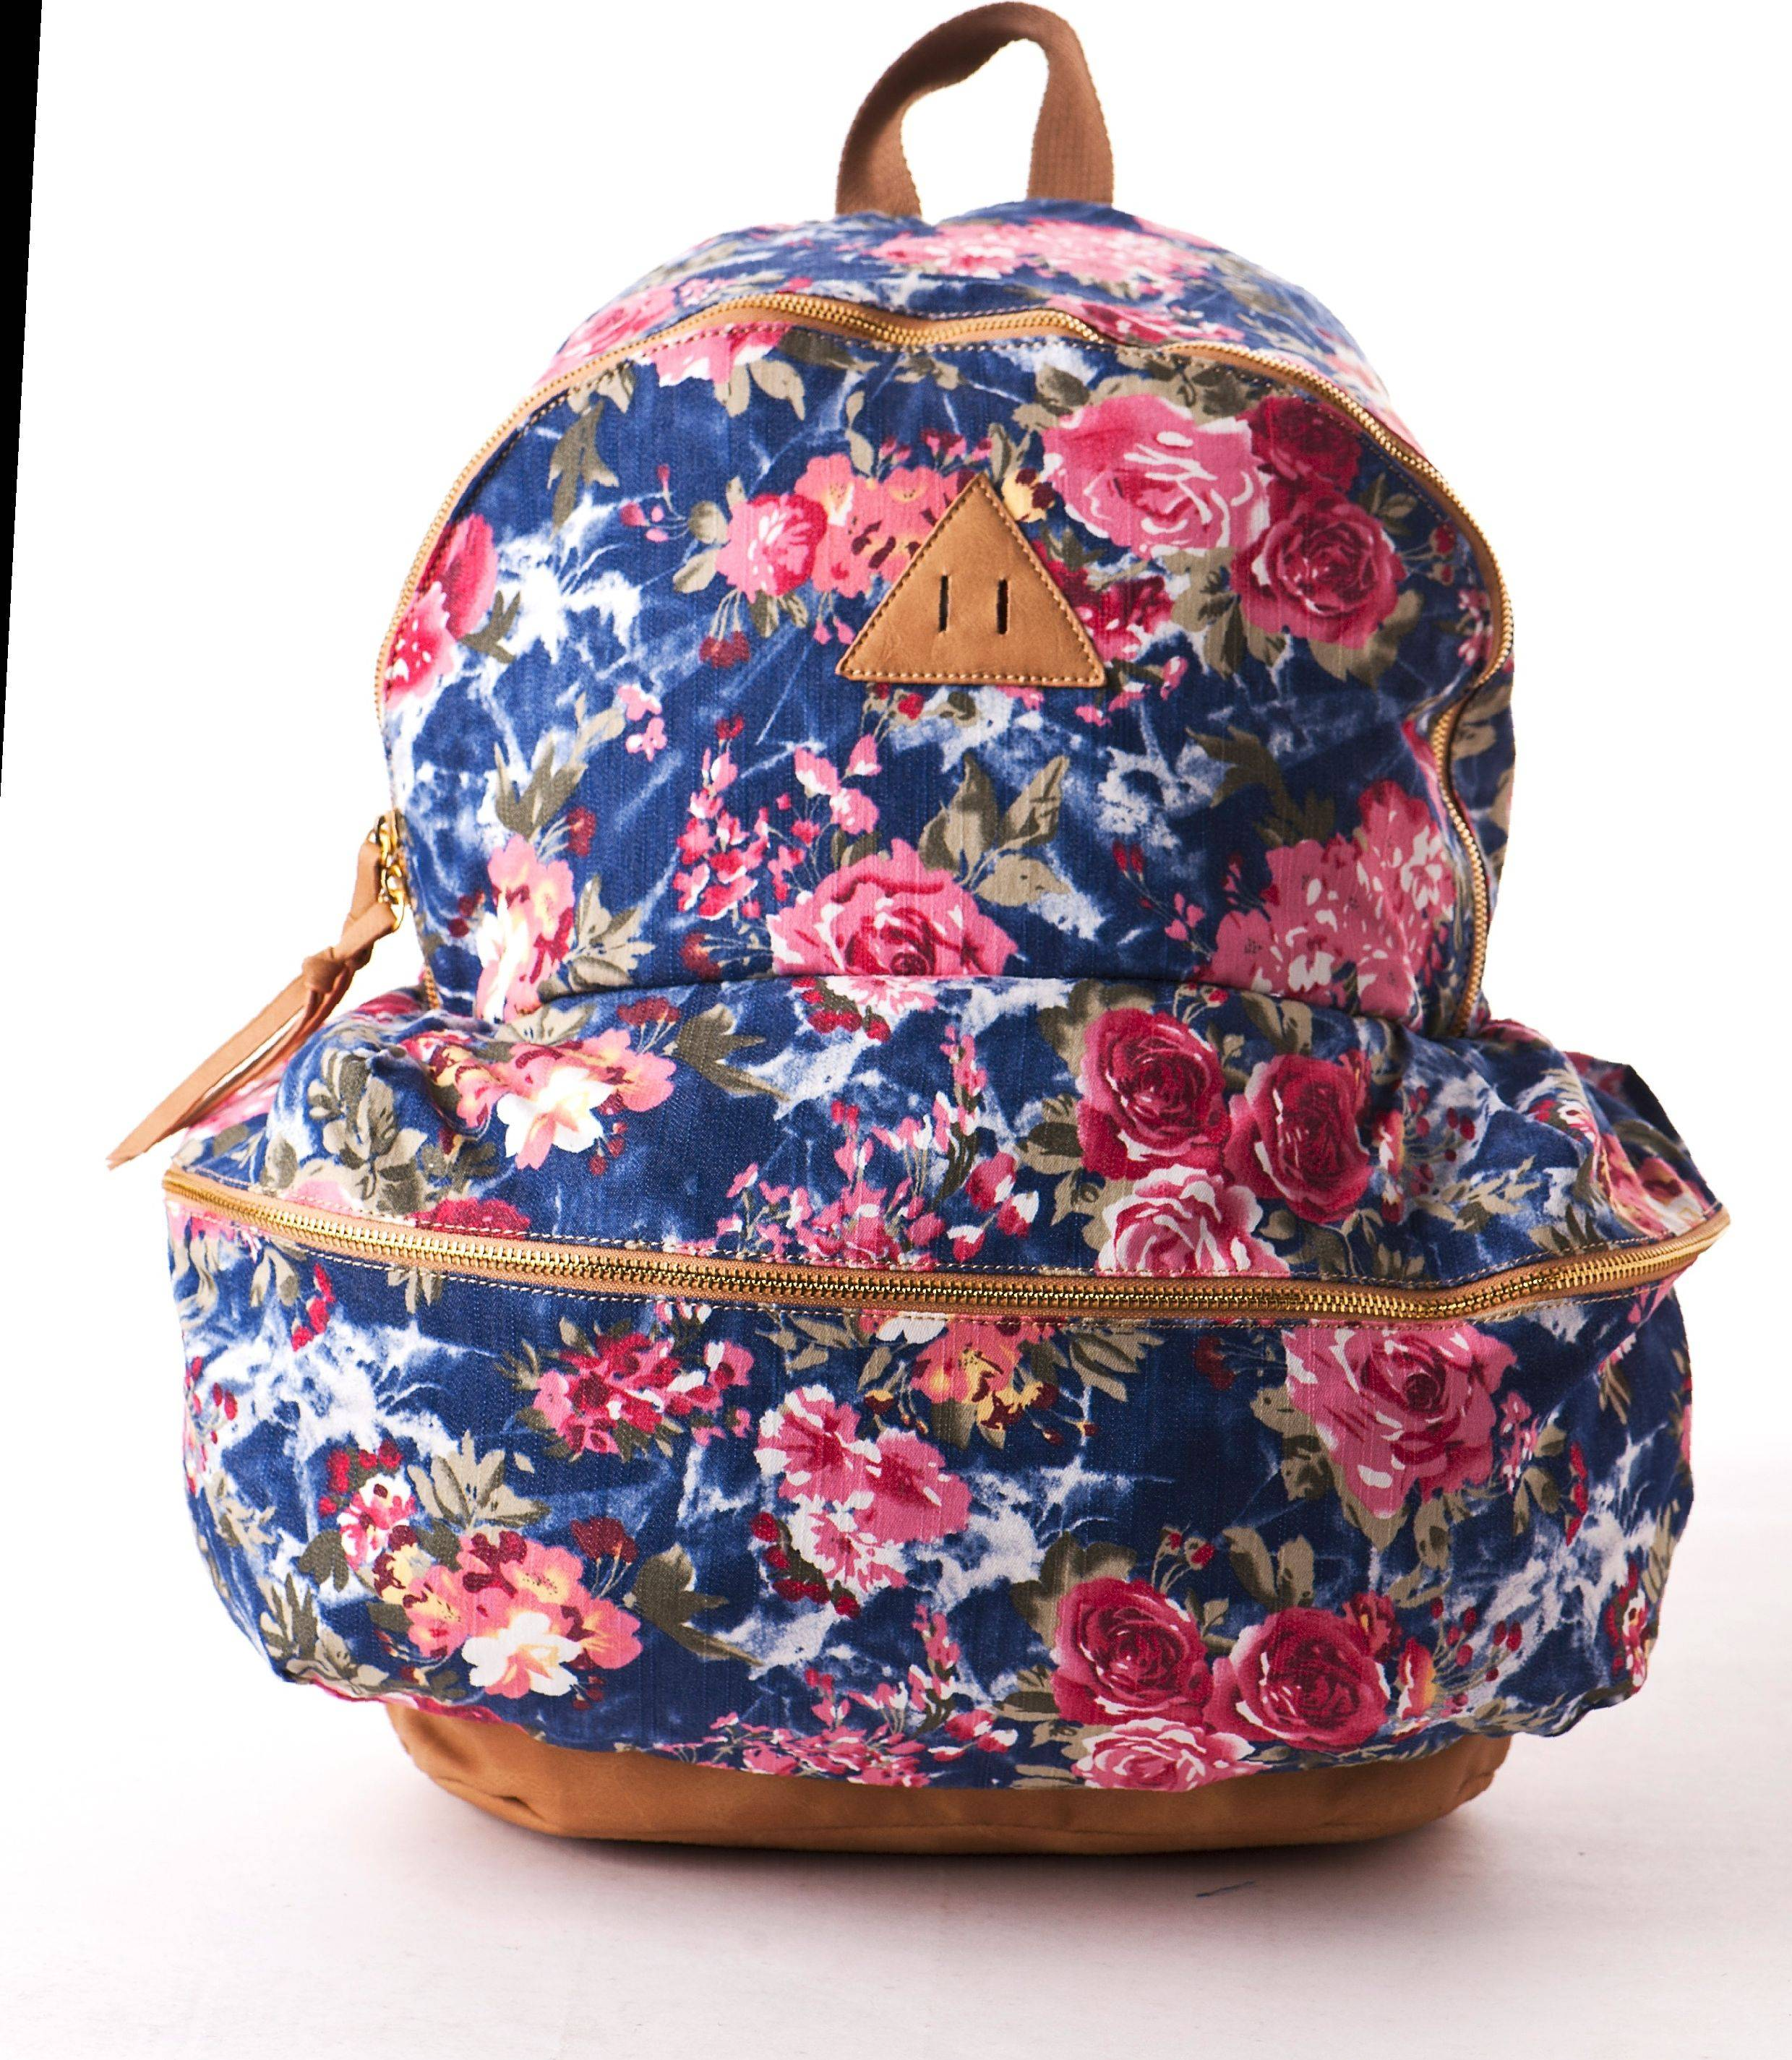 Teenage girls will love a trendy alternative to the classic backpack, like this one. Floral prints and other bright patterns add a little punch to any accessory. $34 at Francesca's, francescas.com